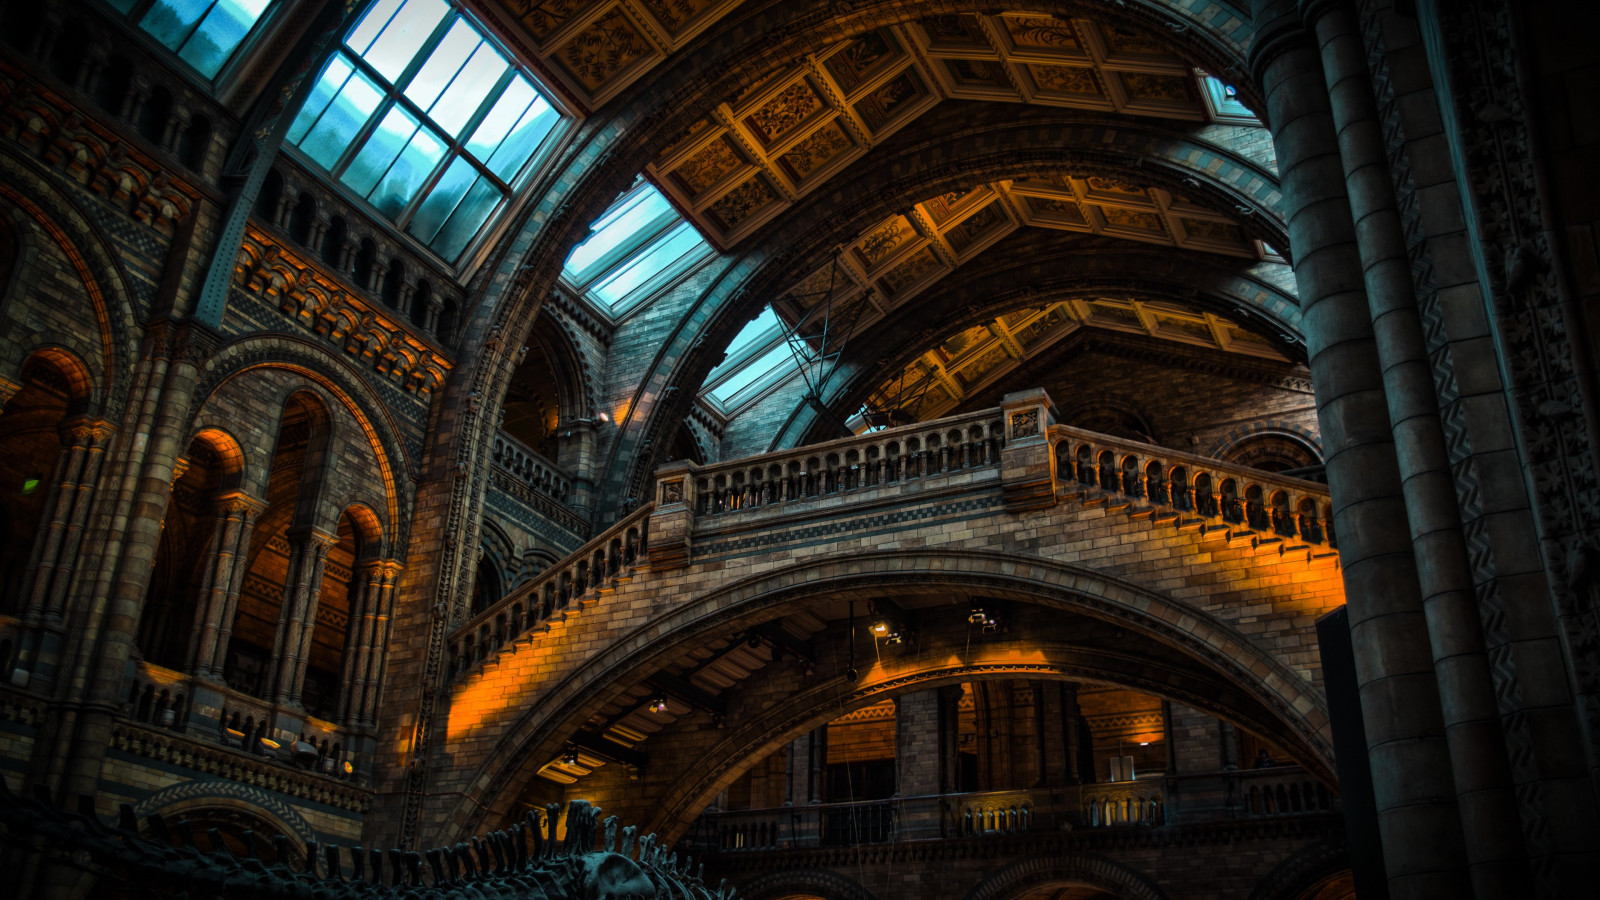 Inside of Natural History Museum from London | 1600x900 wallpaper